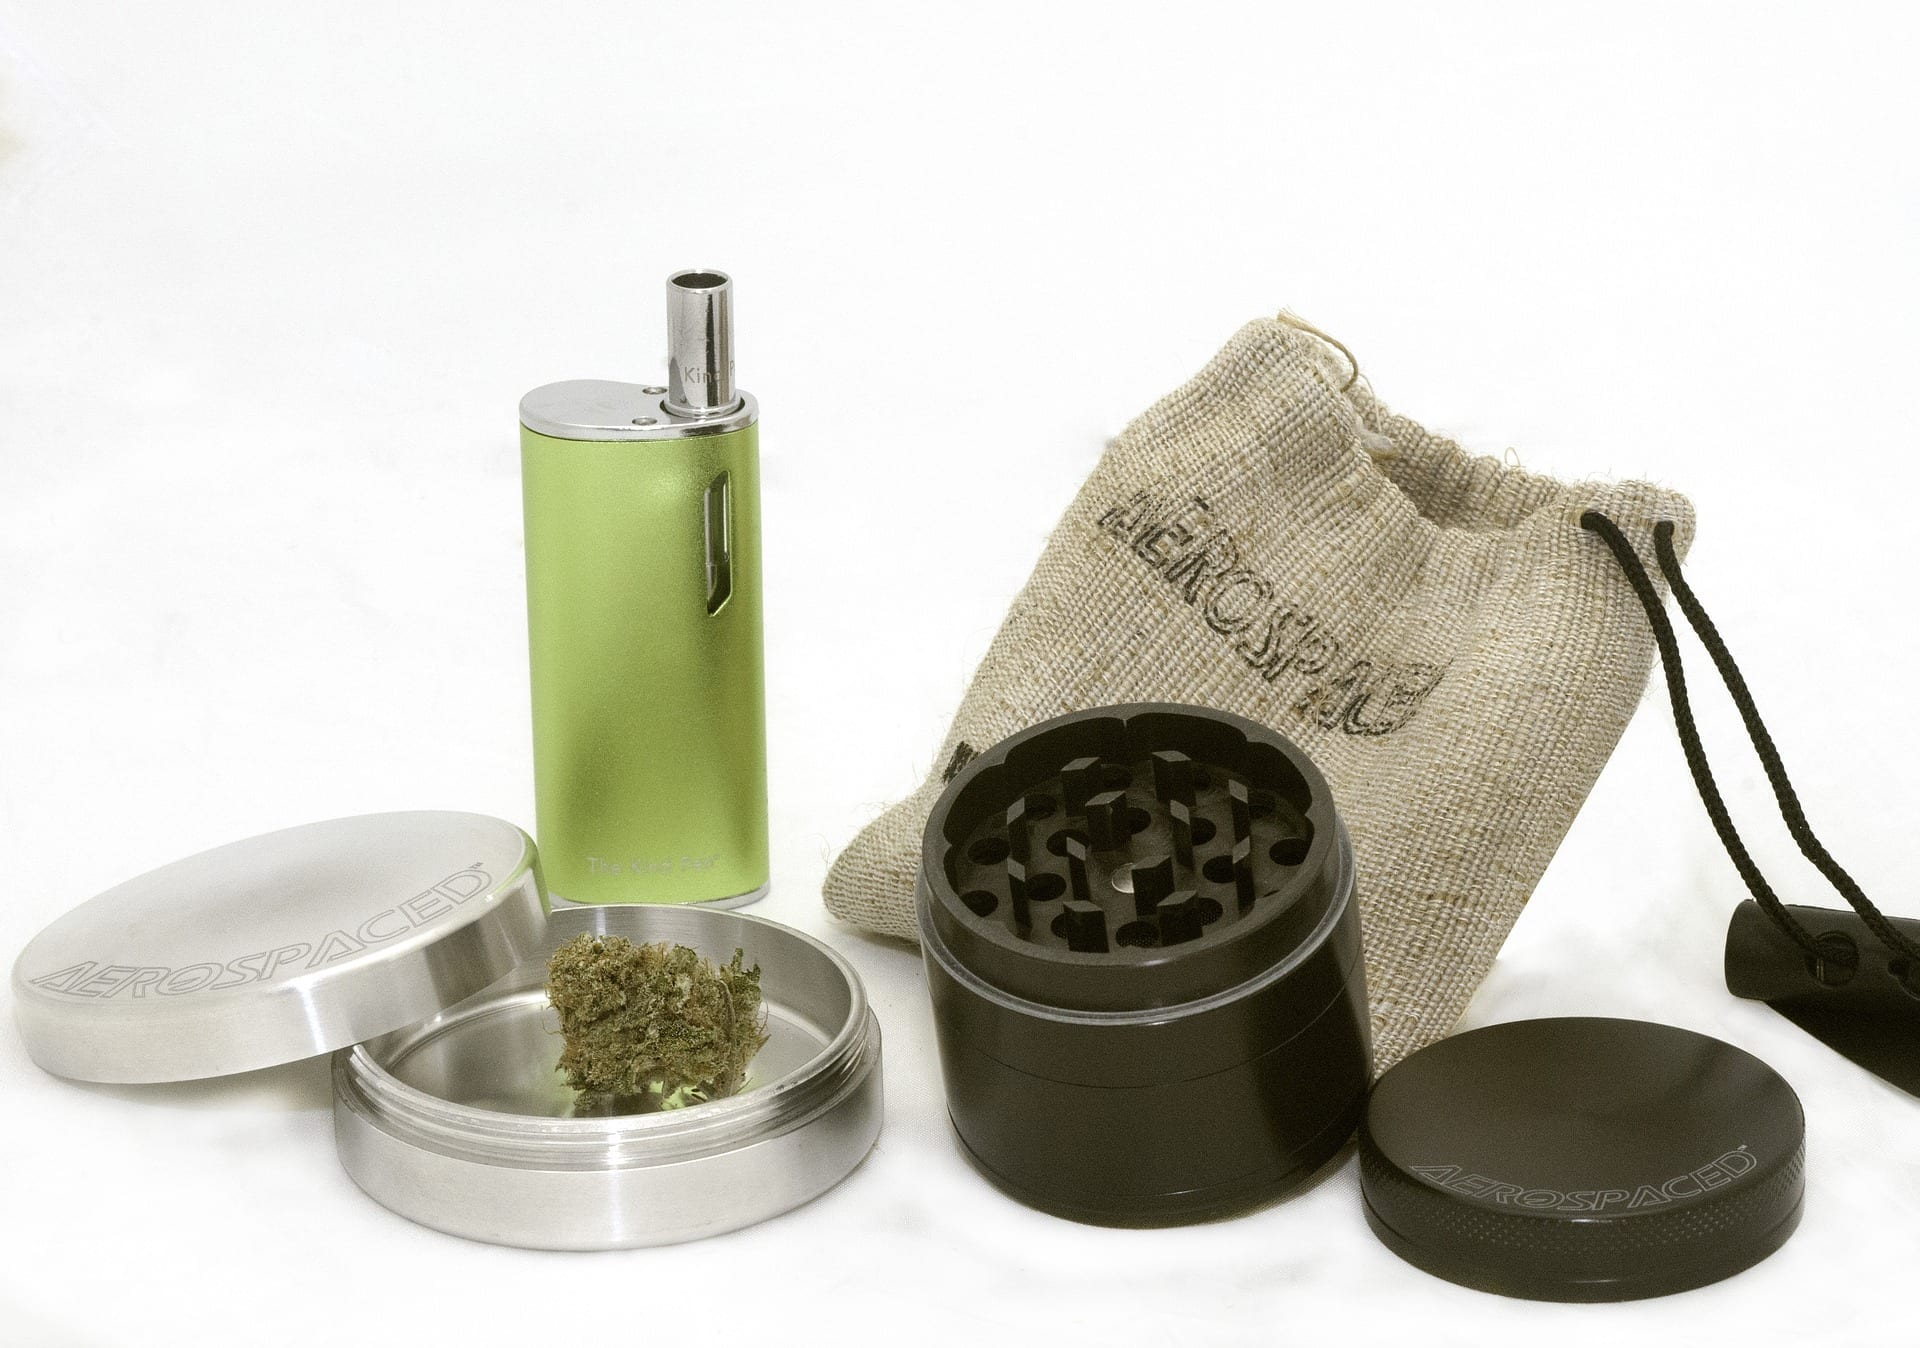 Best Weed Grinder of 2020: Reviews & Guide